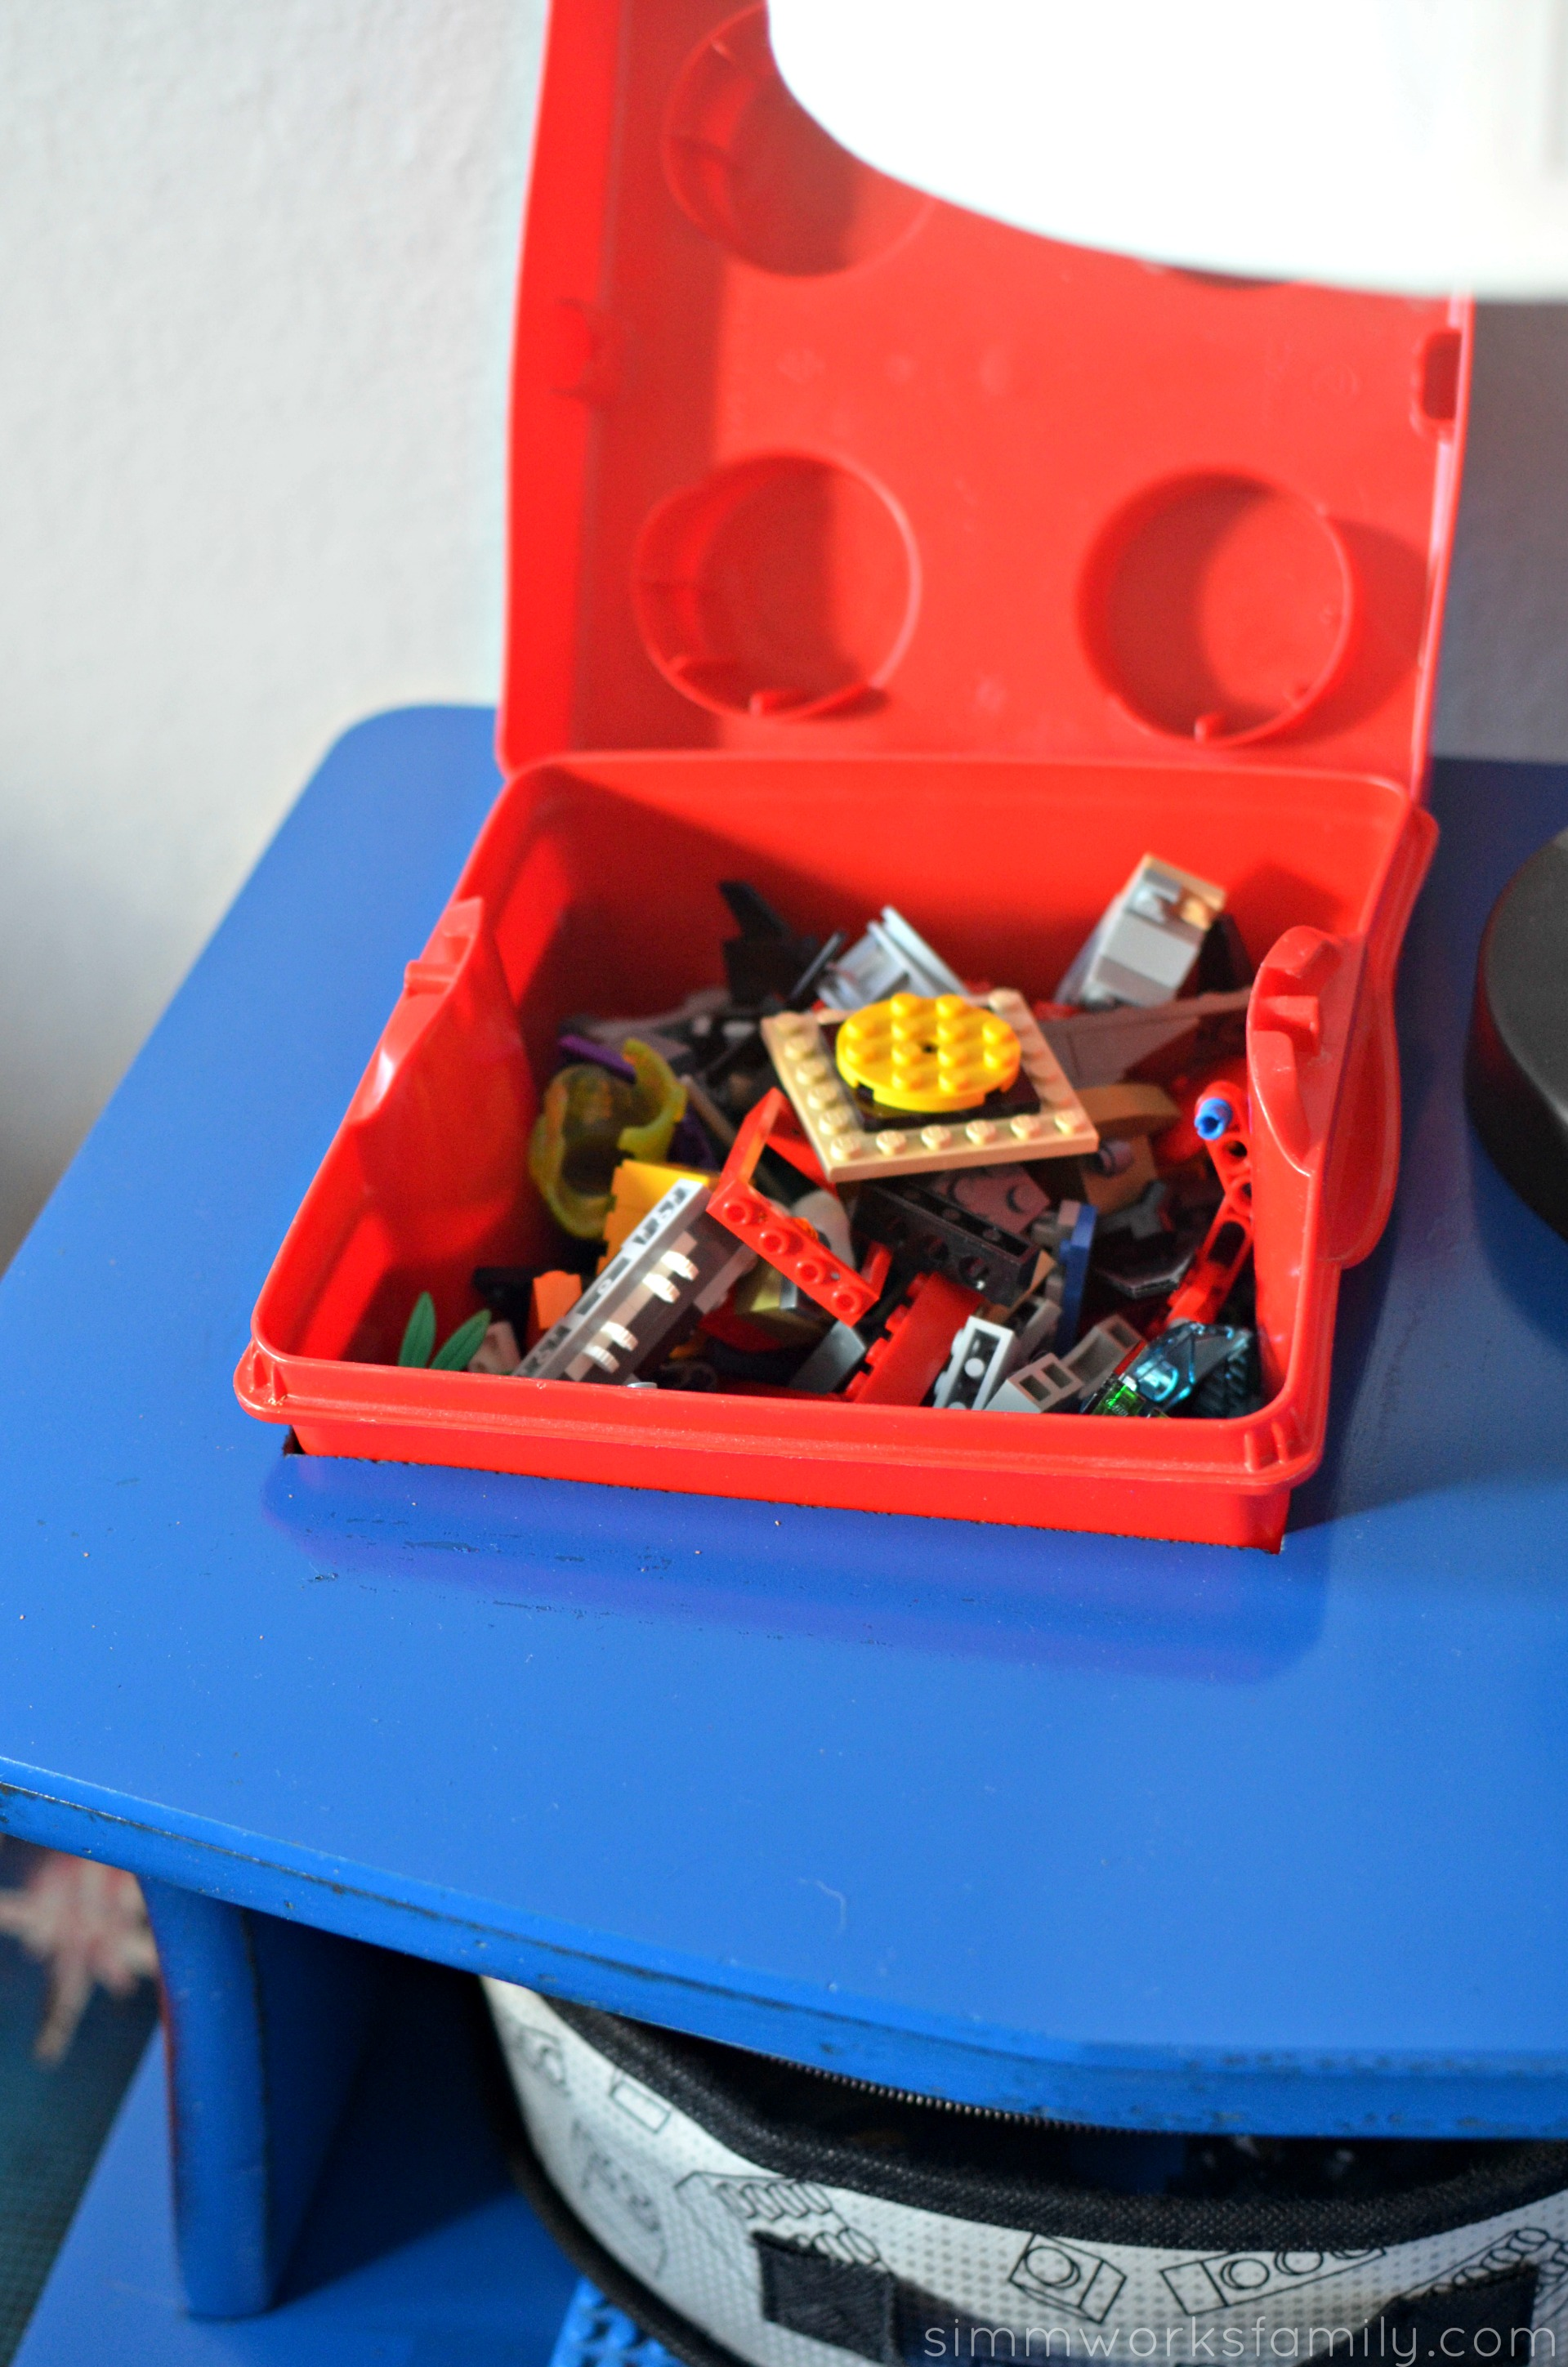 DIY Lego Side Table - built in LEGO box